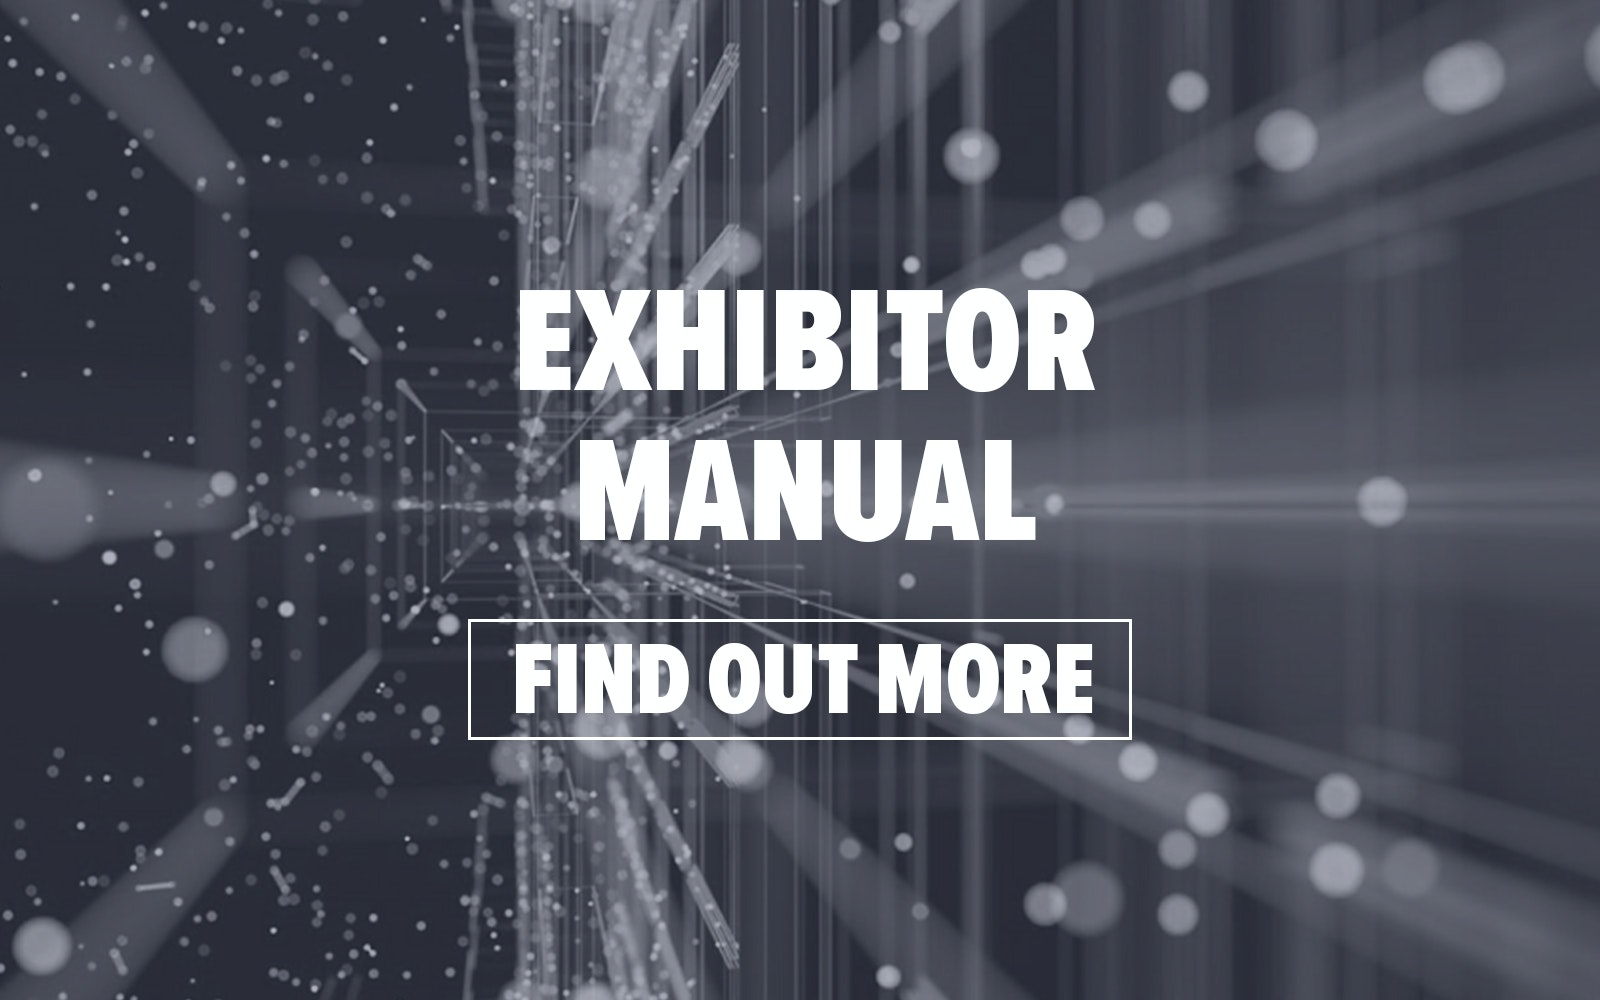 CrewConnect Global exhibitor manual